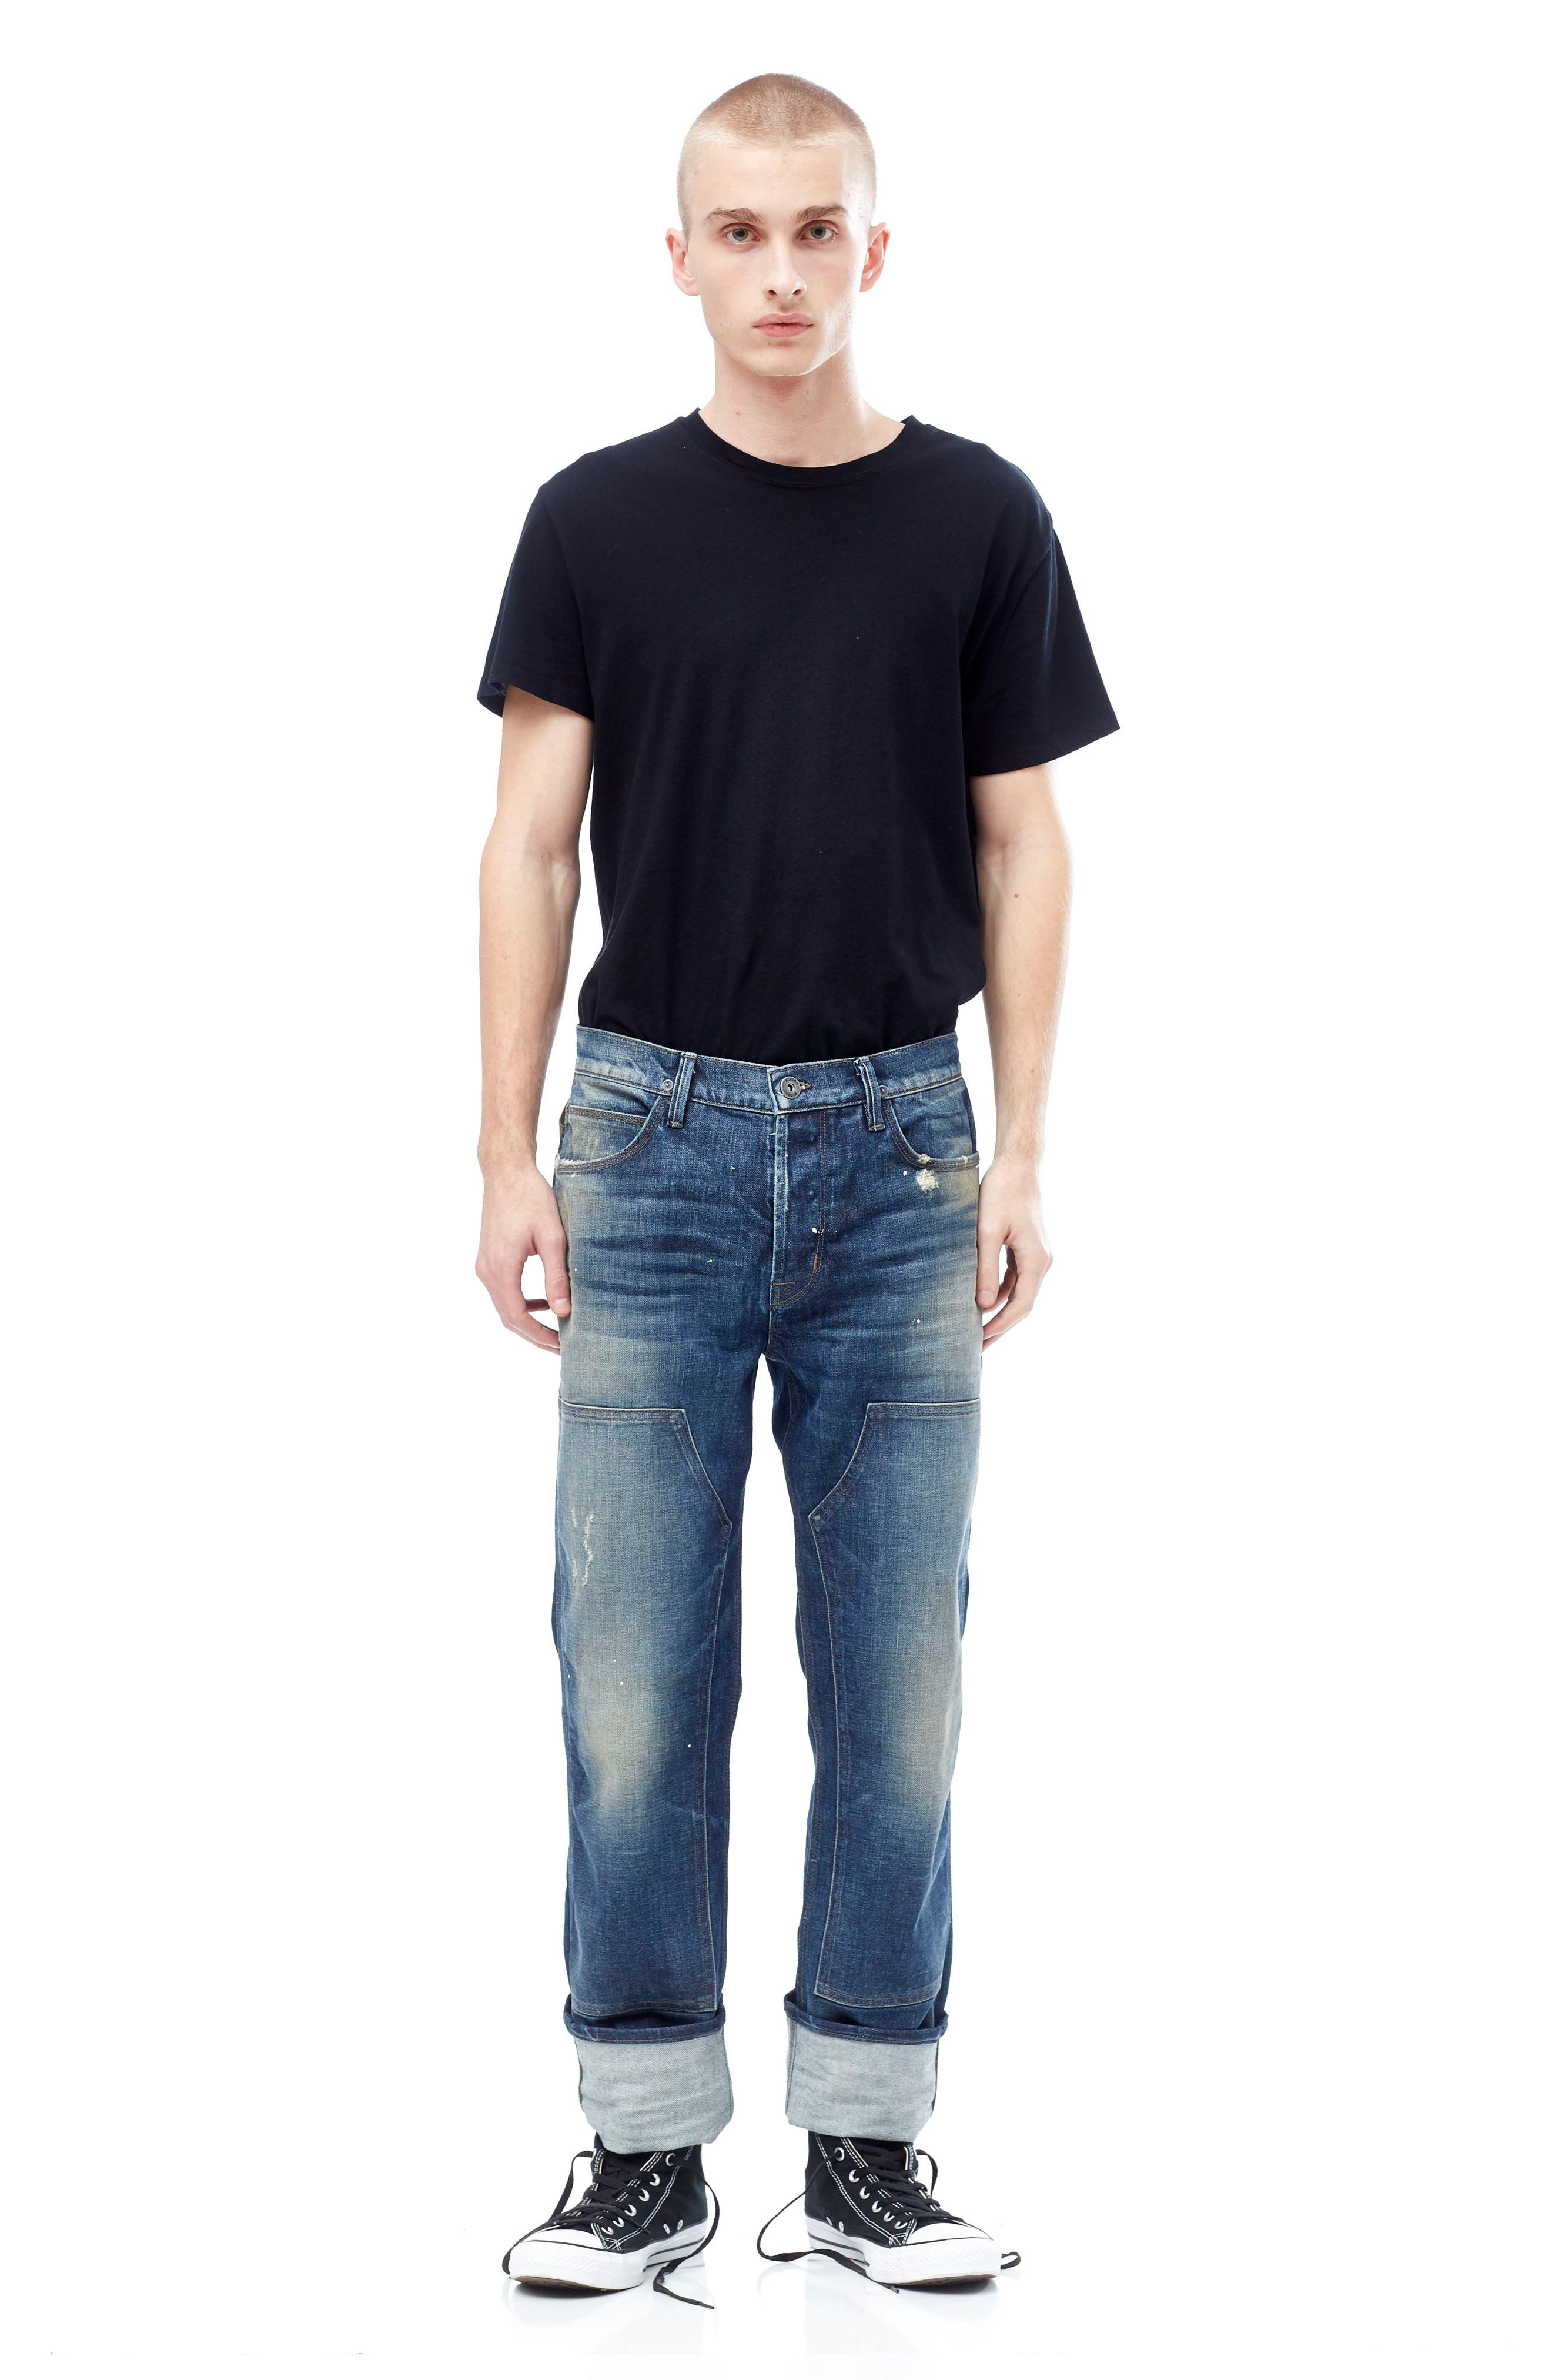 Hunter Straight Fit Jeans,                             Alternate thumbnail 8, color,                             422